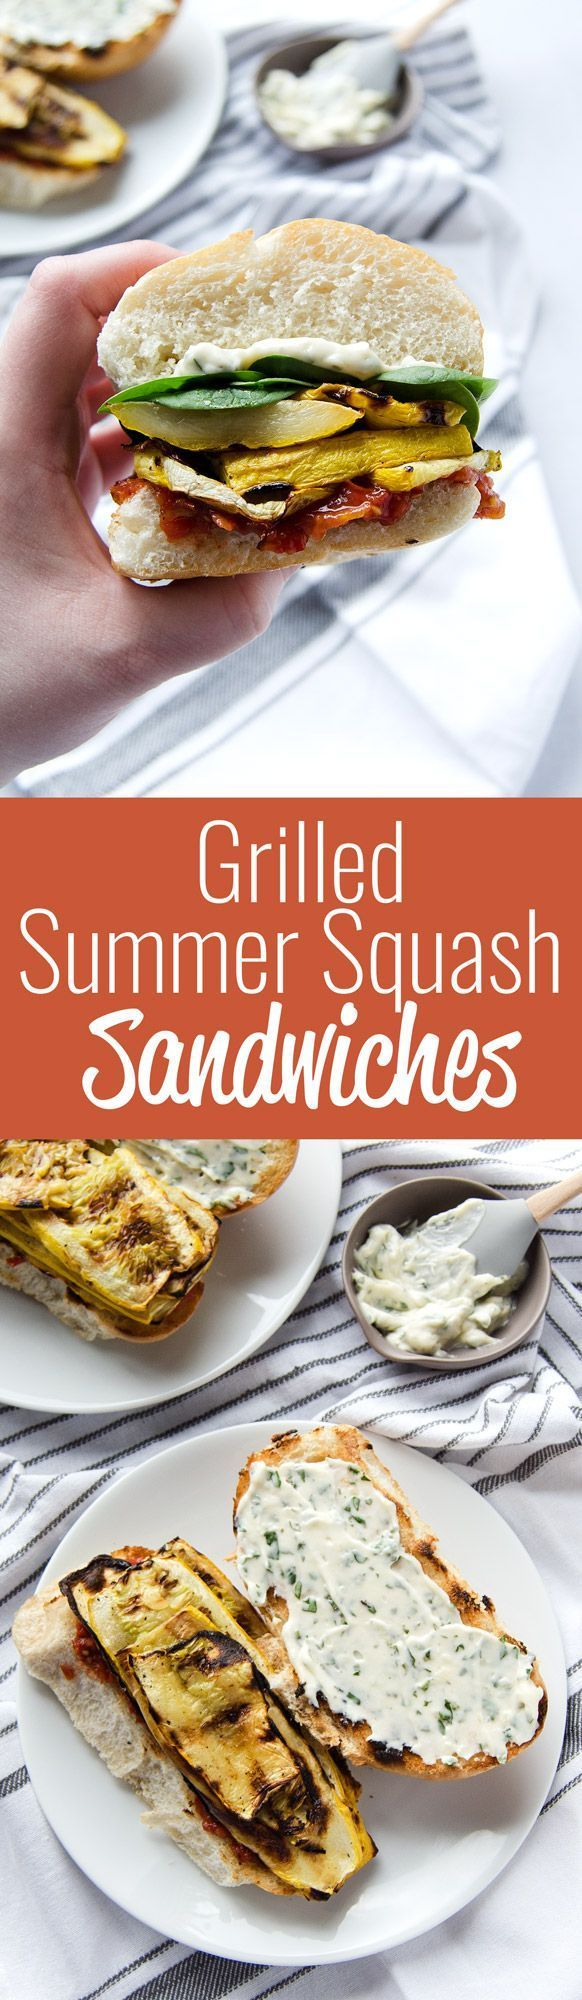 Grilled Summer Squash Sandwiches with Tomatoes and Basil Mayo - A simple flavorful grilled veggie sandwich that is sure to be your new favorite. (Vegan & GF)   RECIPE at http://NomingthruLife.com